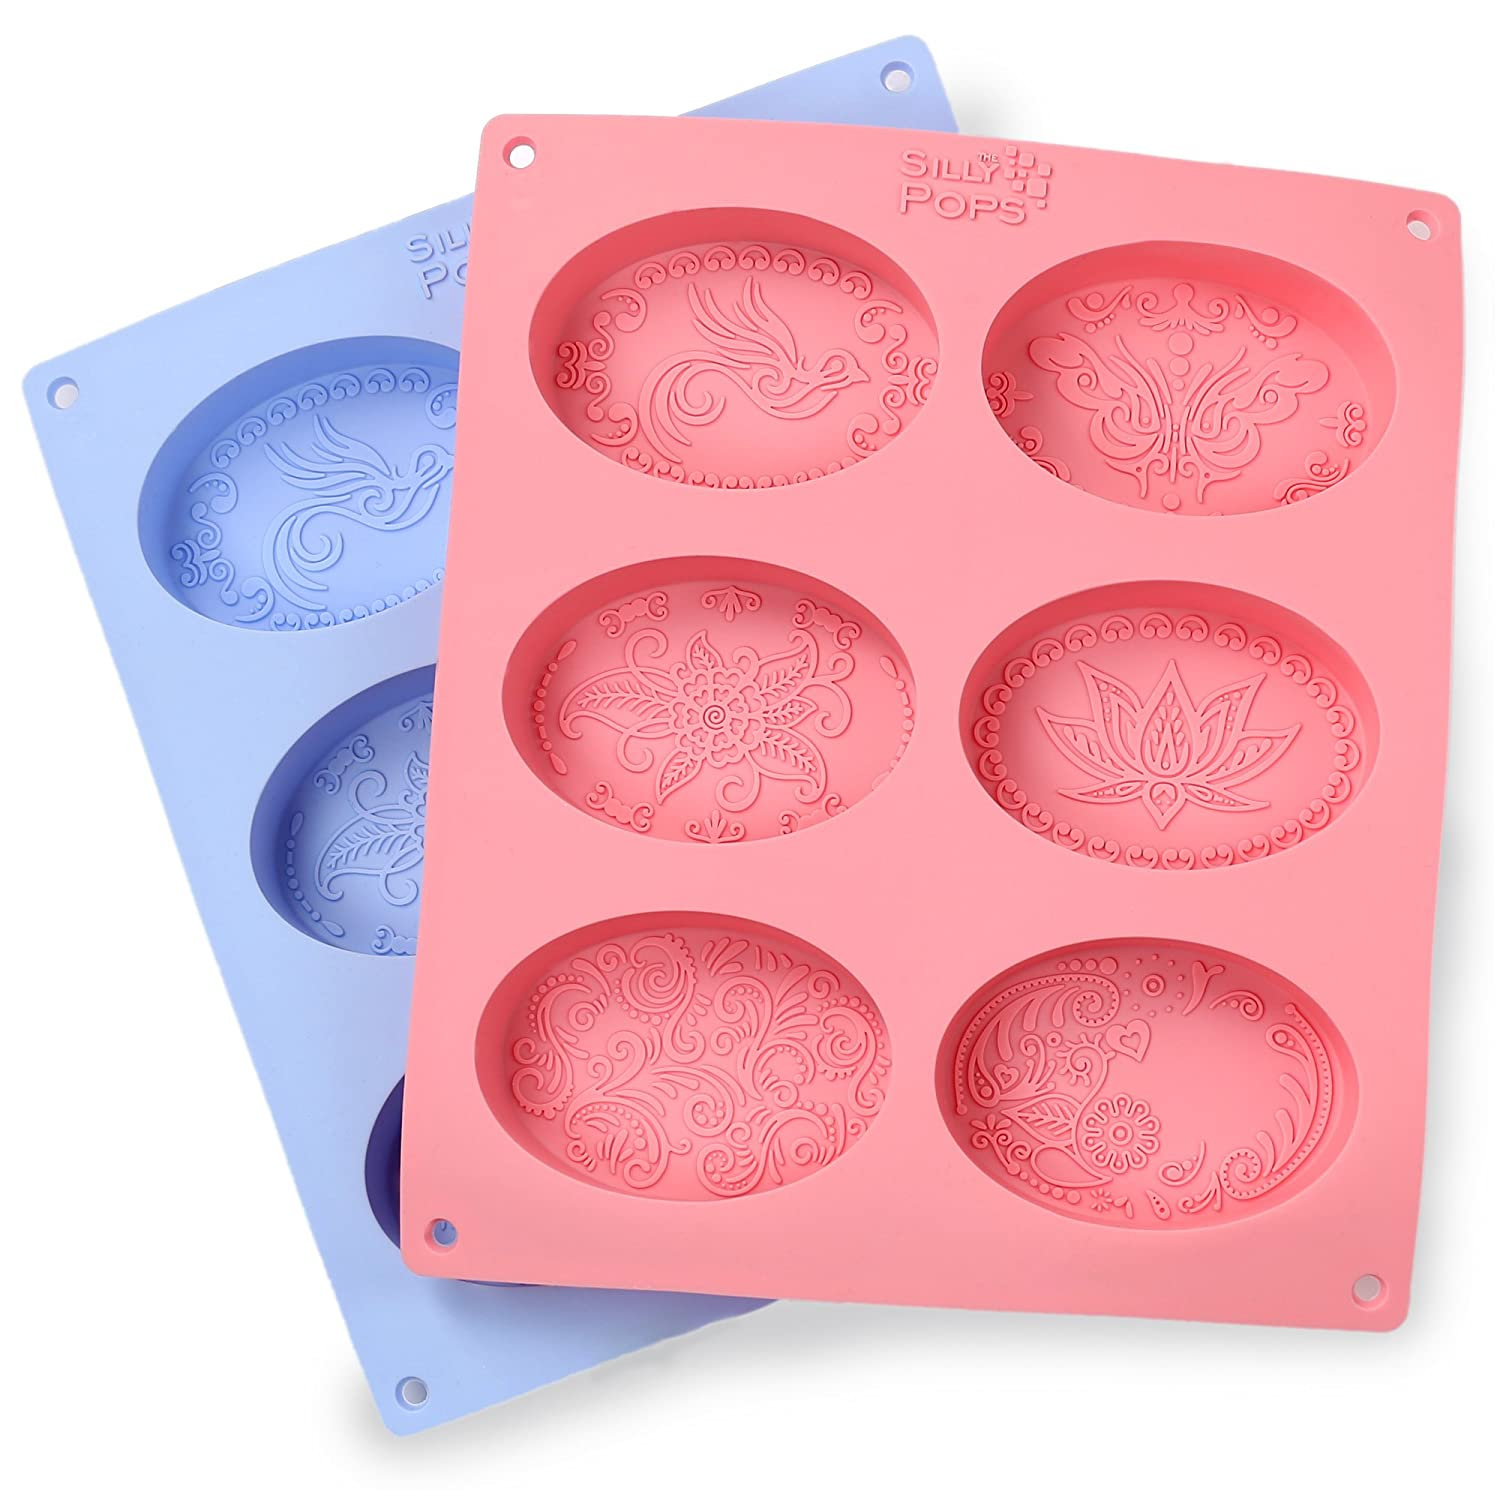 Ellipse Silicone Soap Molds - Set of 2 for 12 Cavities - Mixed Patterns - Soap Making Supplies by the Silly Pops 4336901338